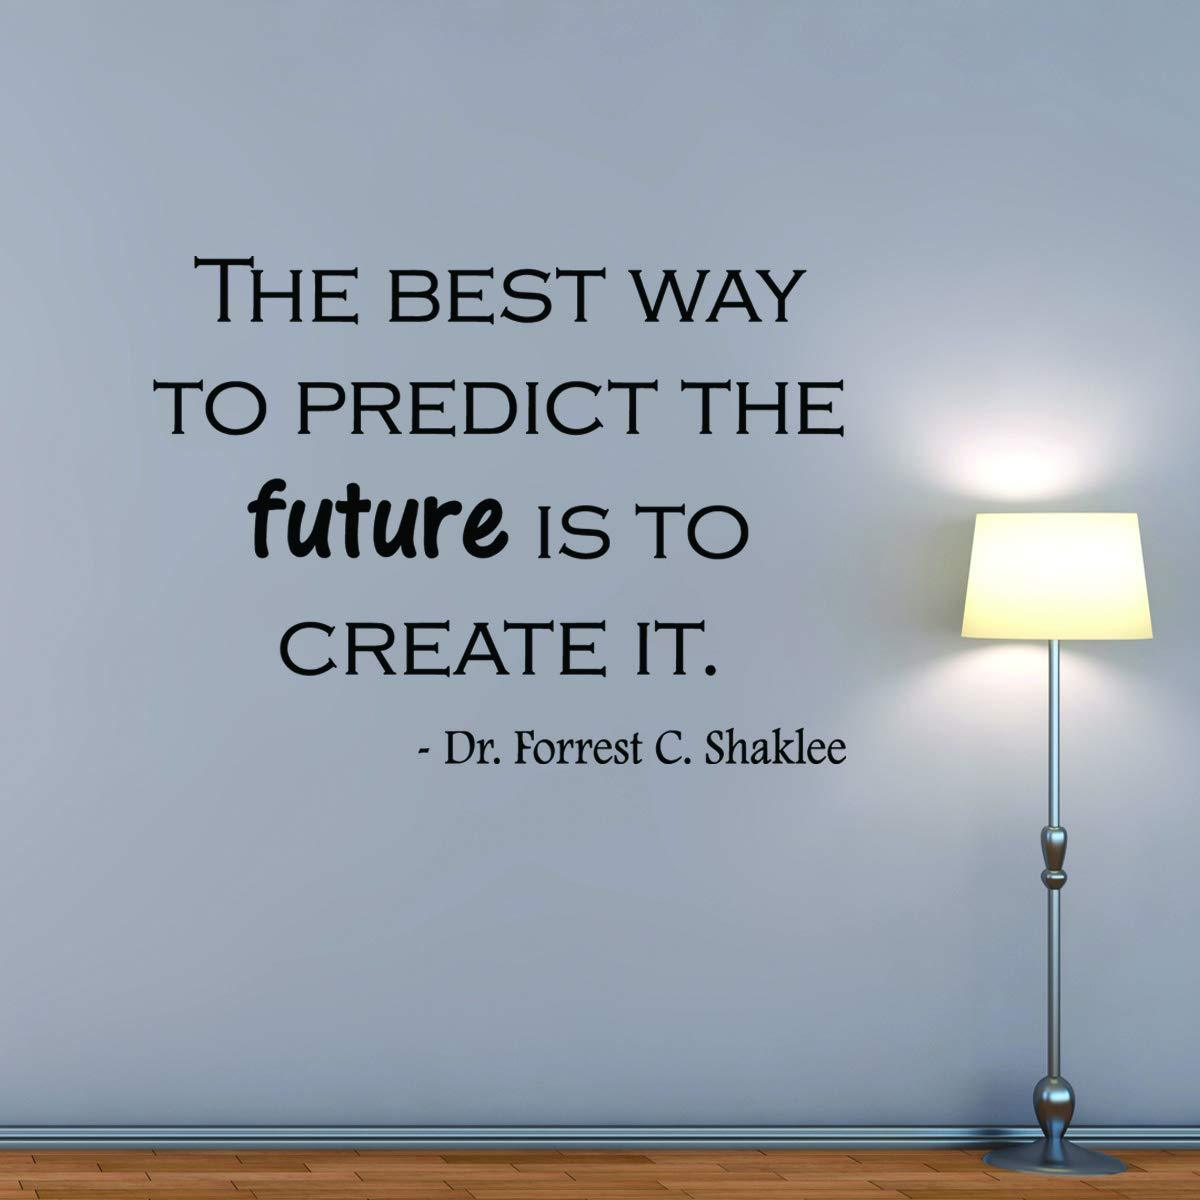 VWAQ The Best Way to Predict The Future is to Create It Vinyl Quotes Wall Decal - VWAQ Vinyl Wall Art Quotes and Prints